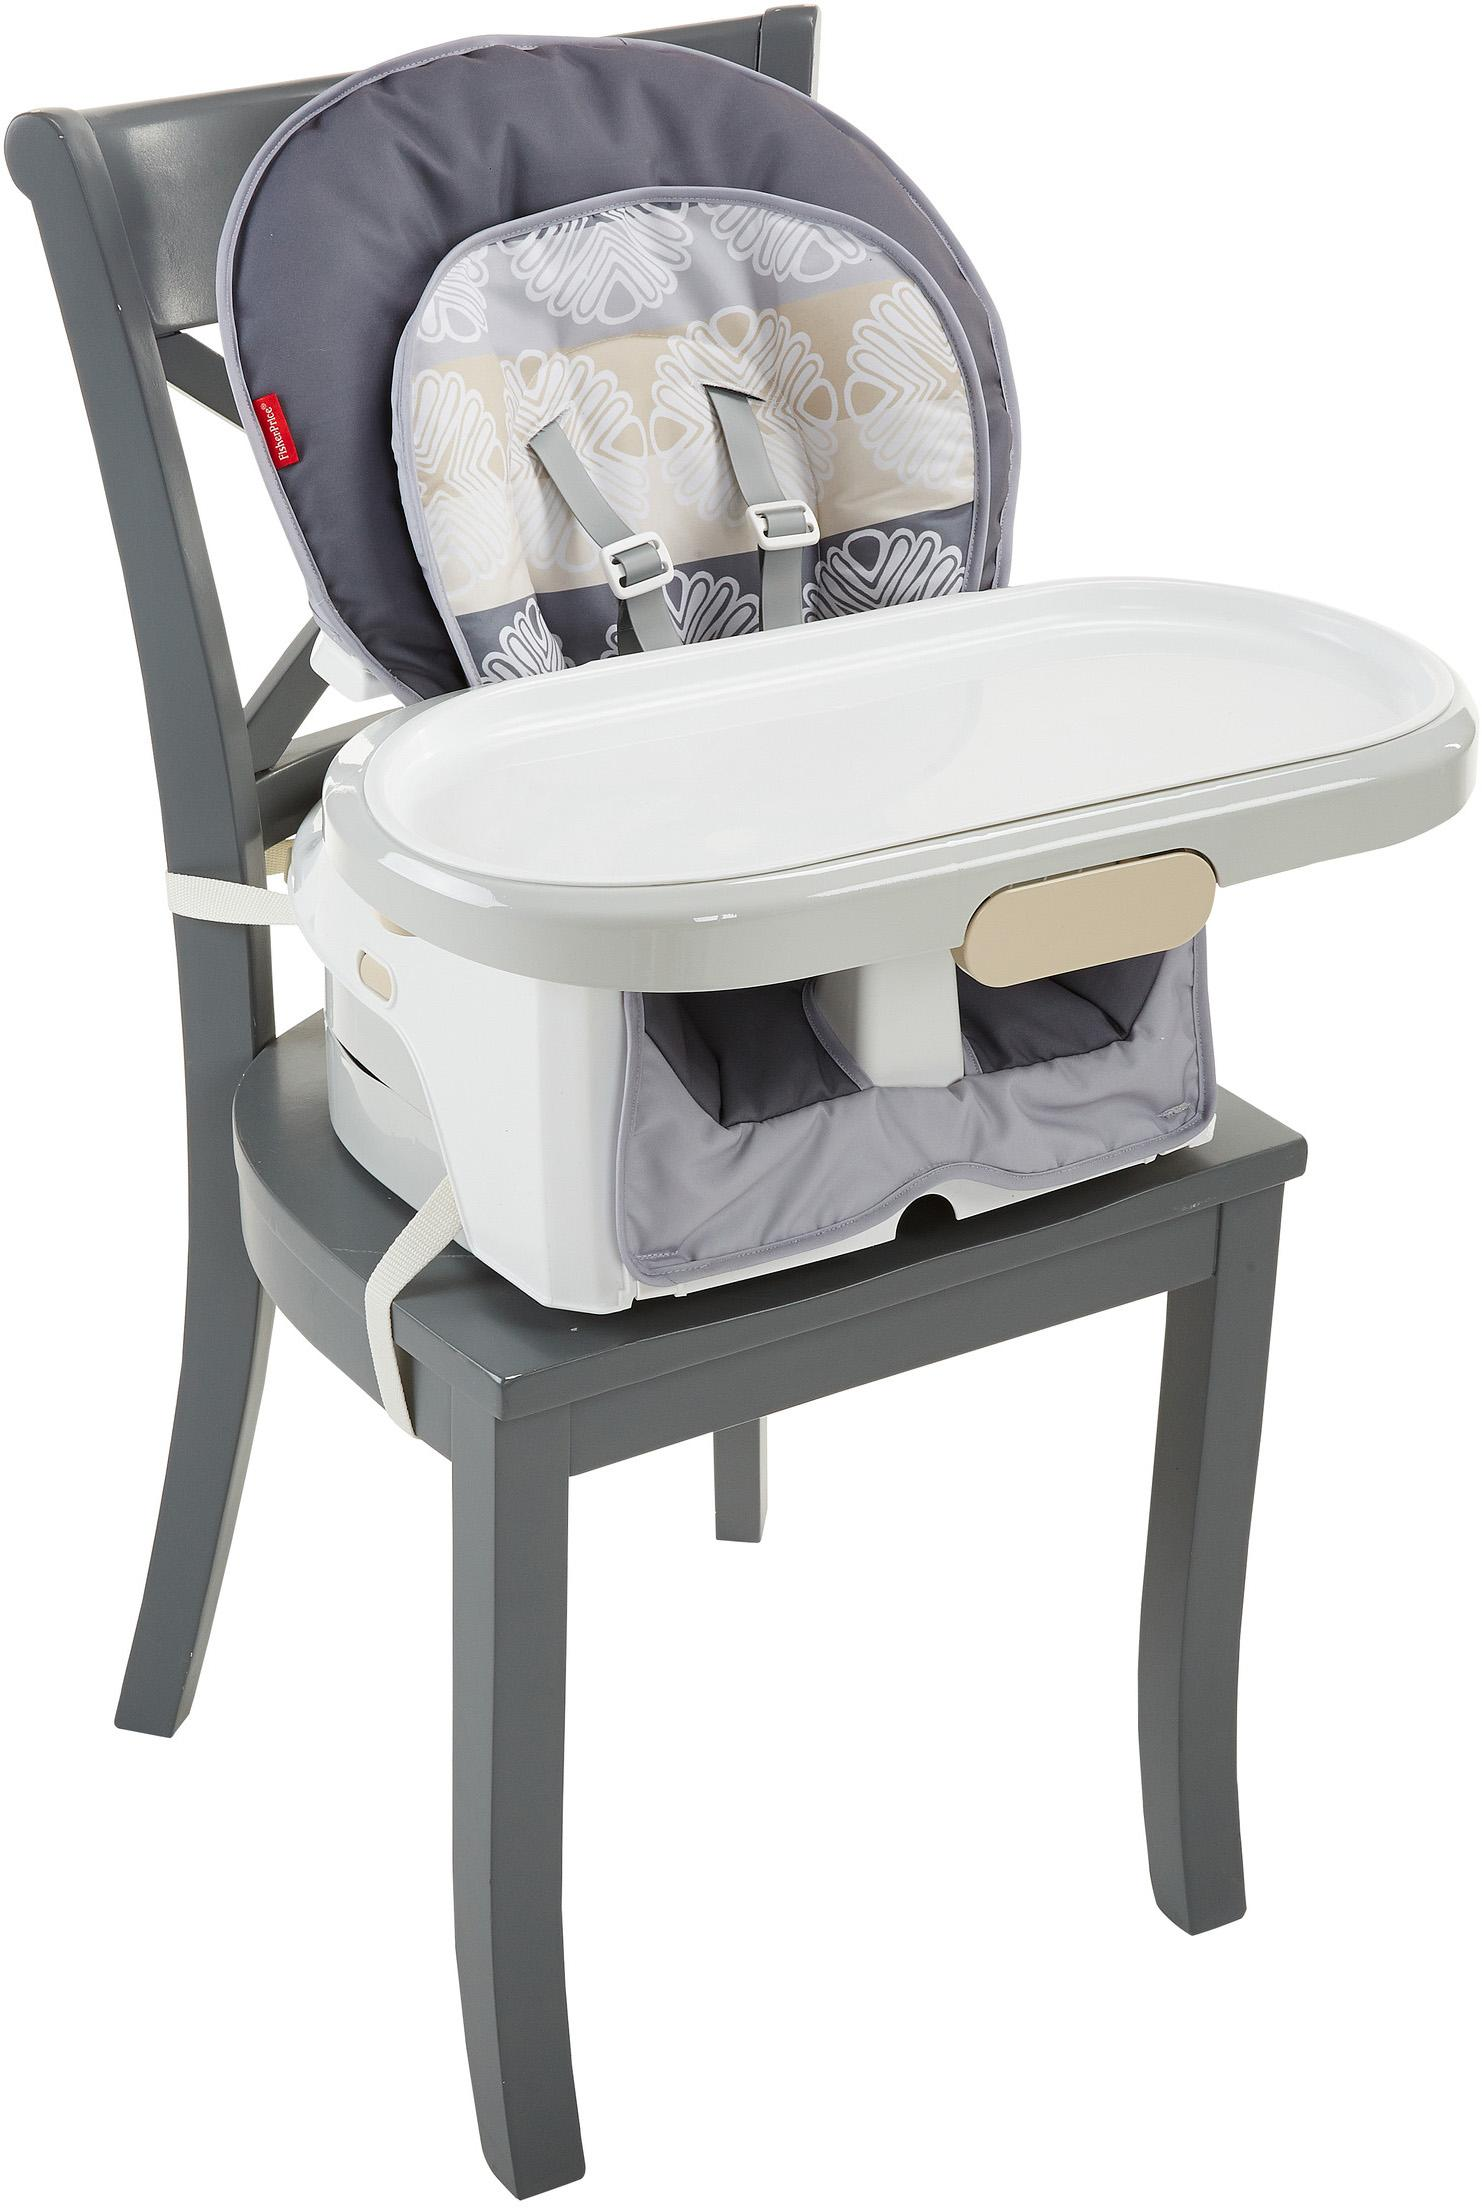 Fisher Price 4 in 1 Total Clean High Chair Babybliss